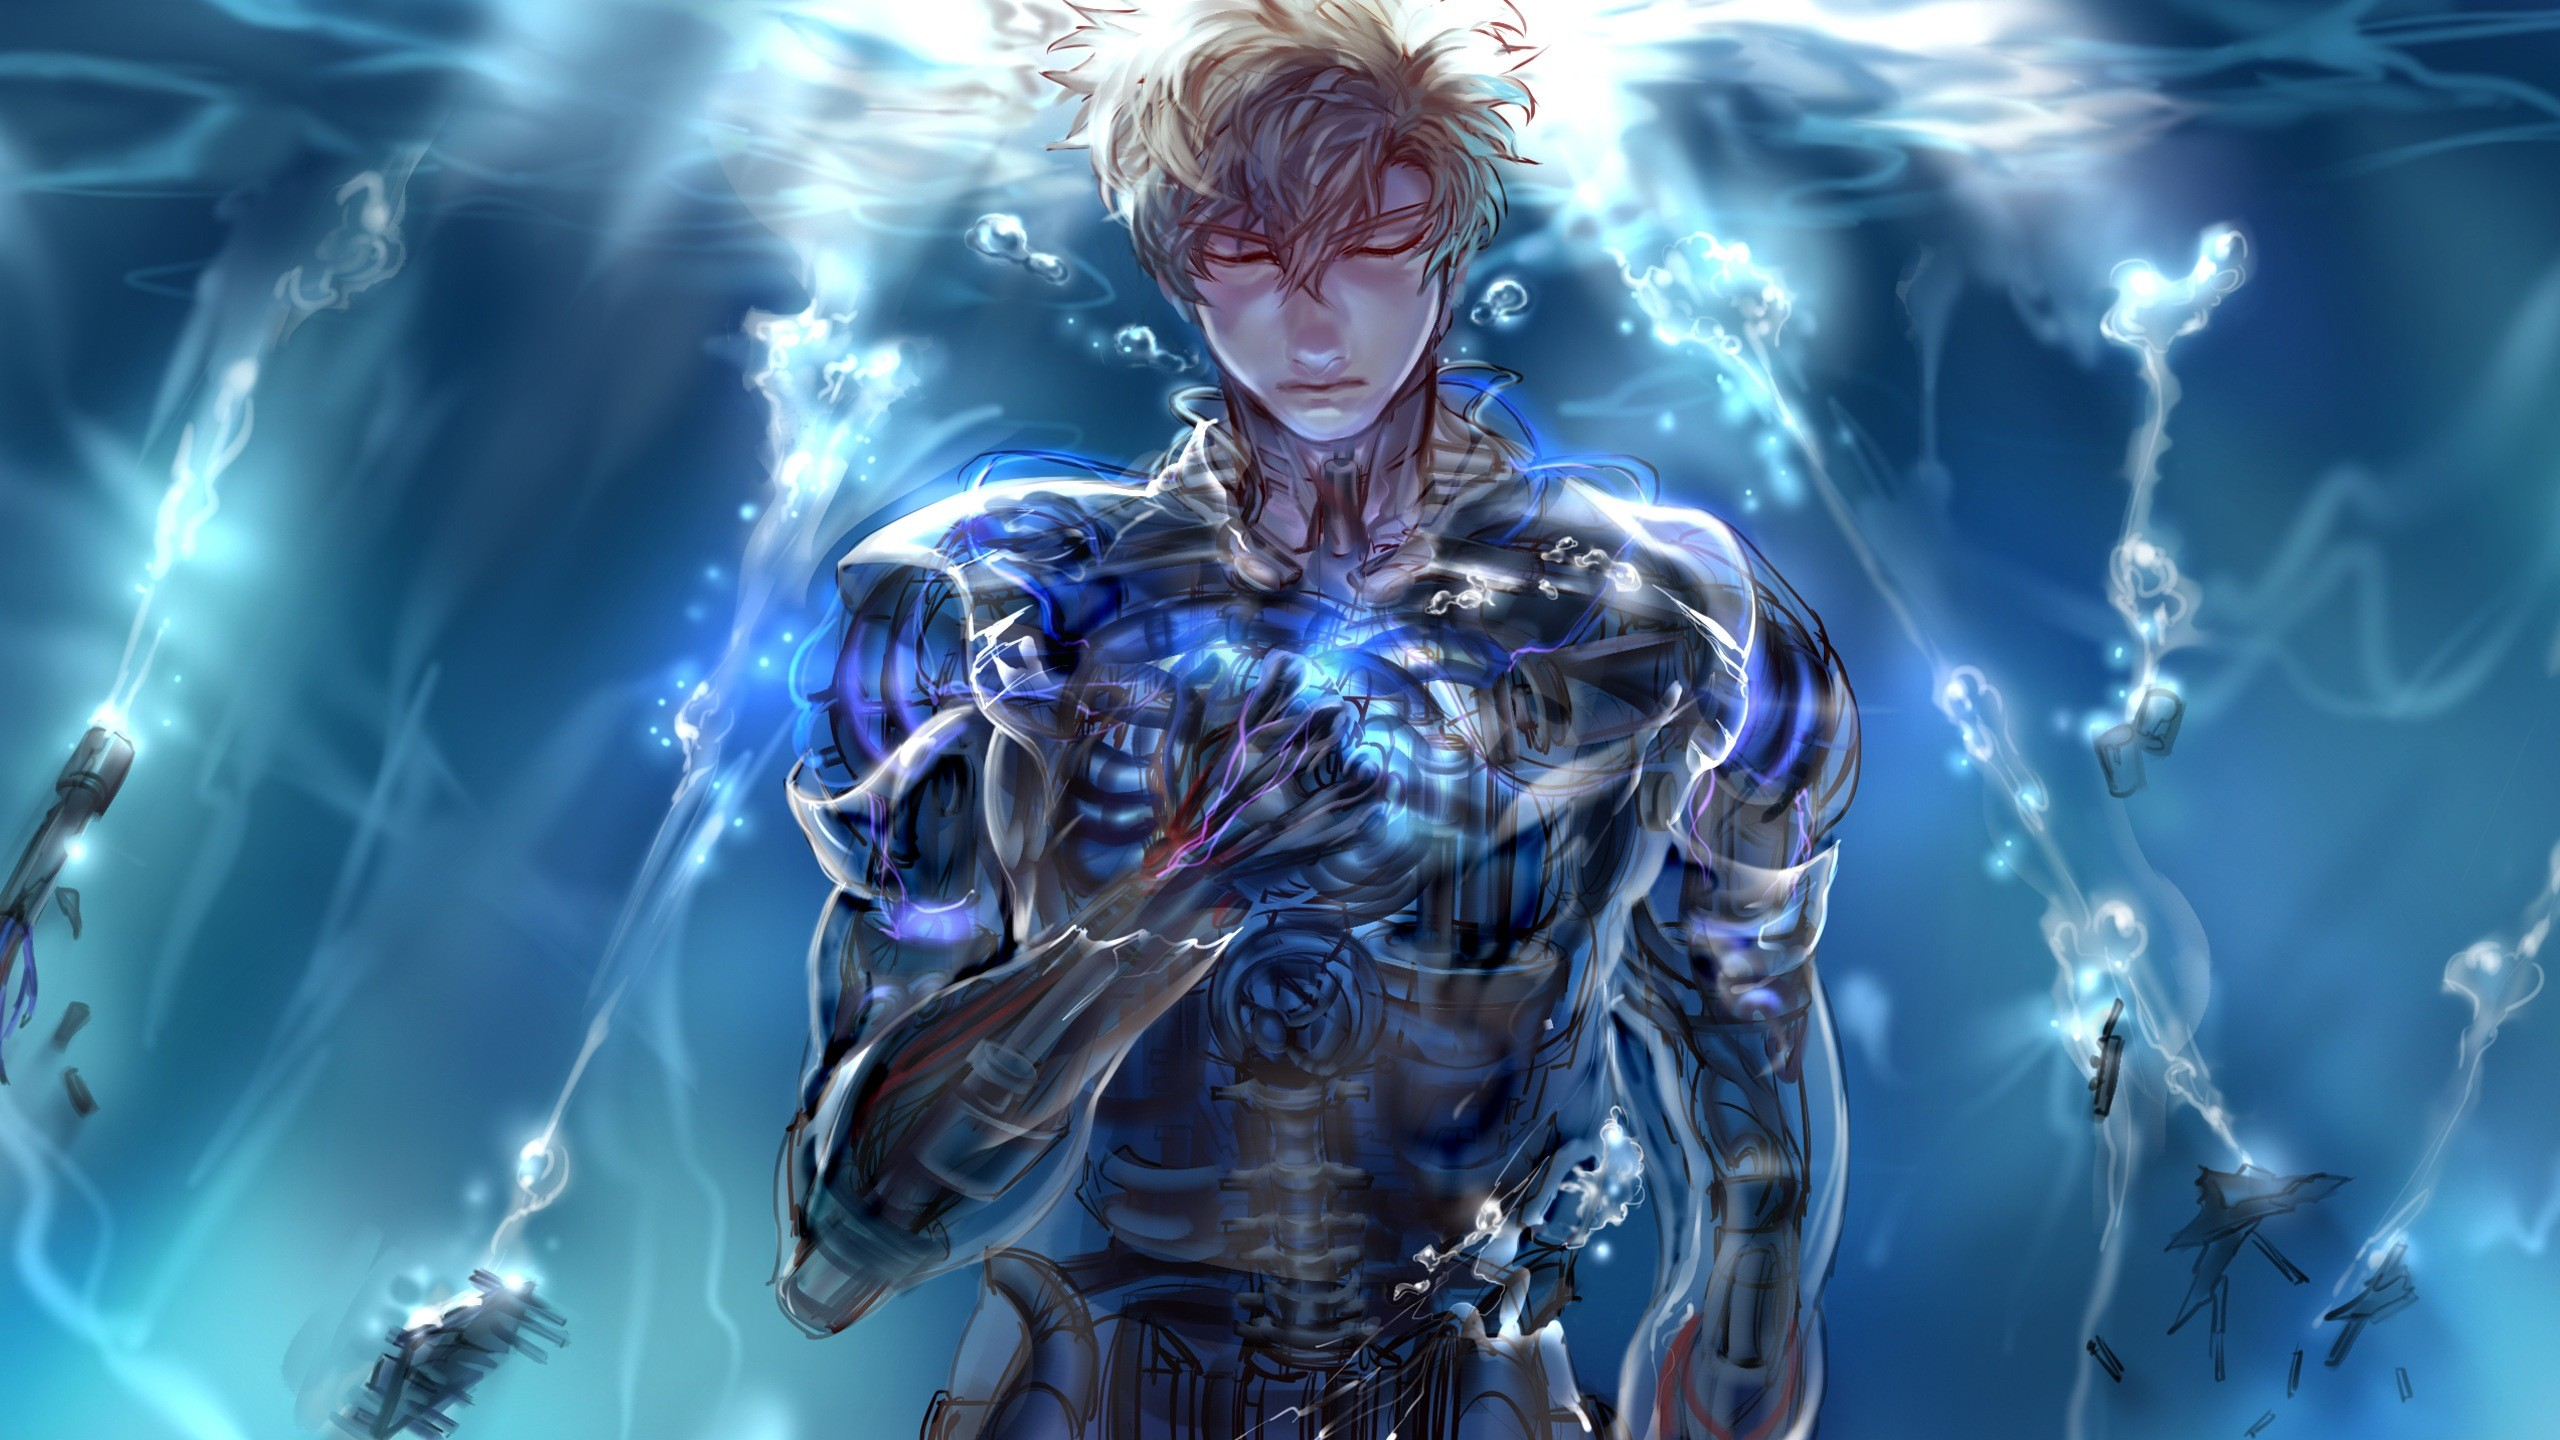 One punch man hd wallpaper 72 images - Anime hd wallpapers for pc ...